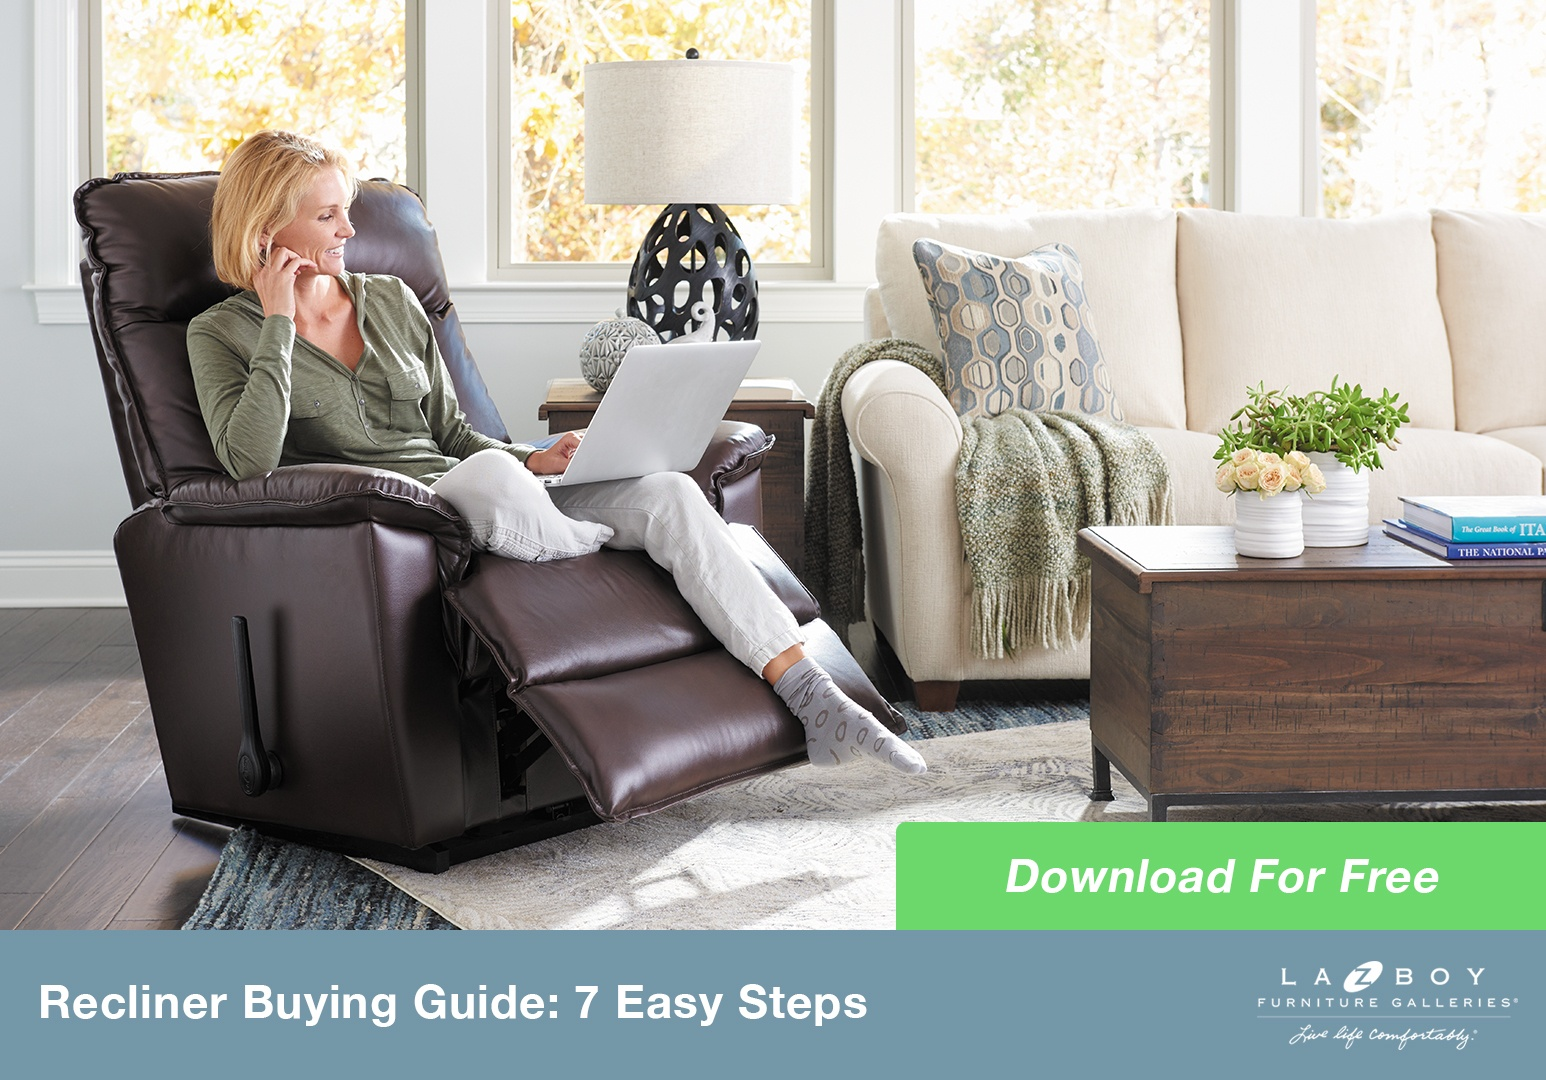 Guide: 3 Steps to Finding the Perfect Recliner